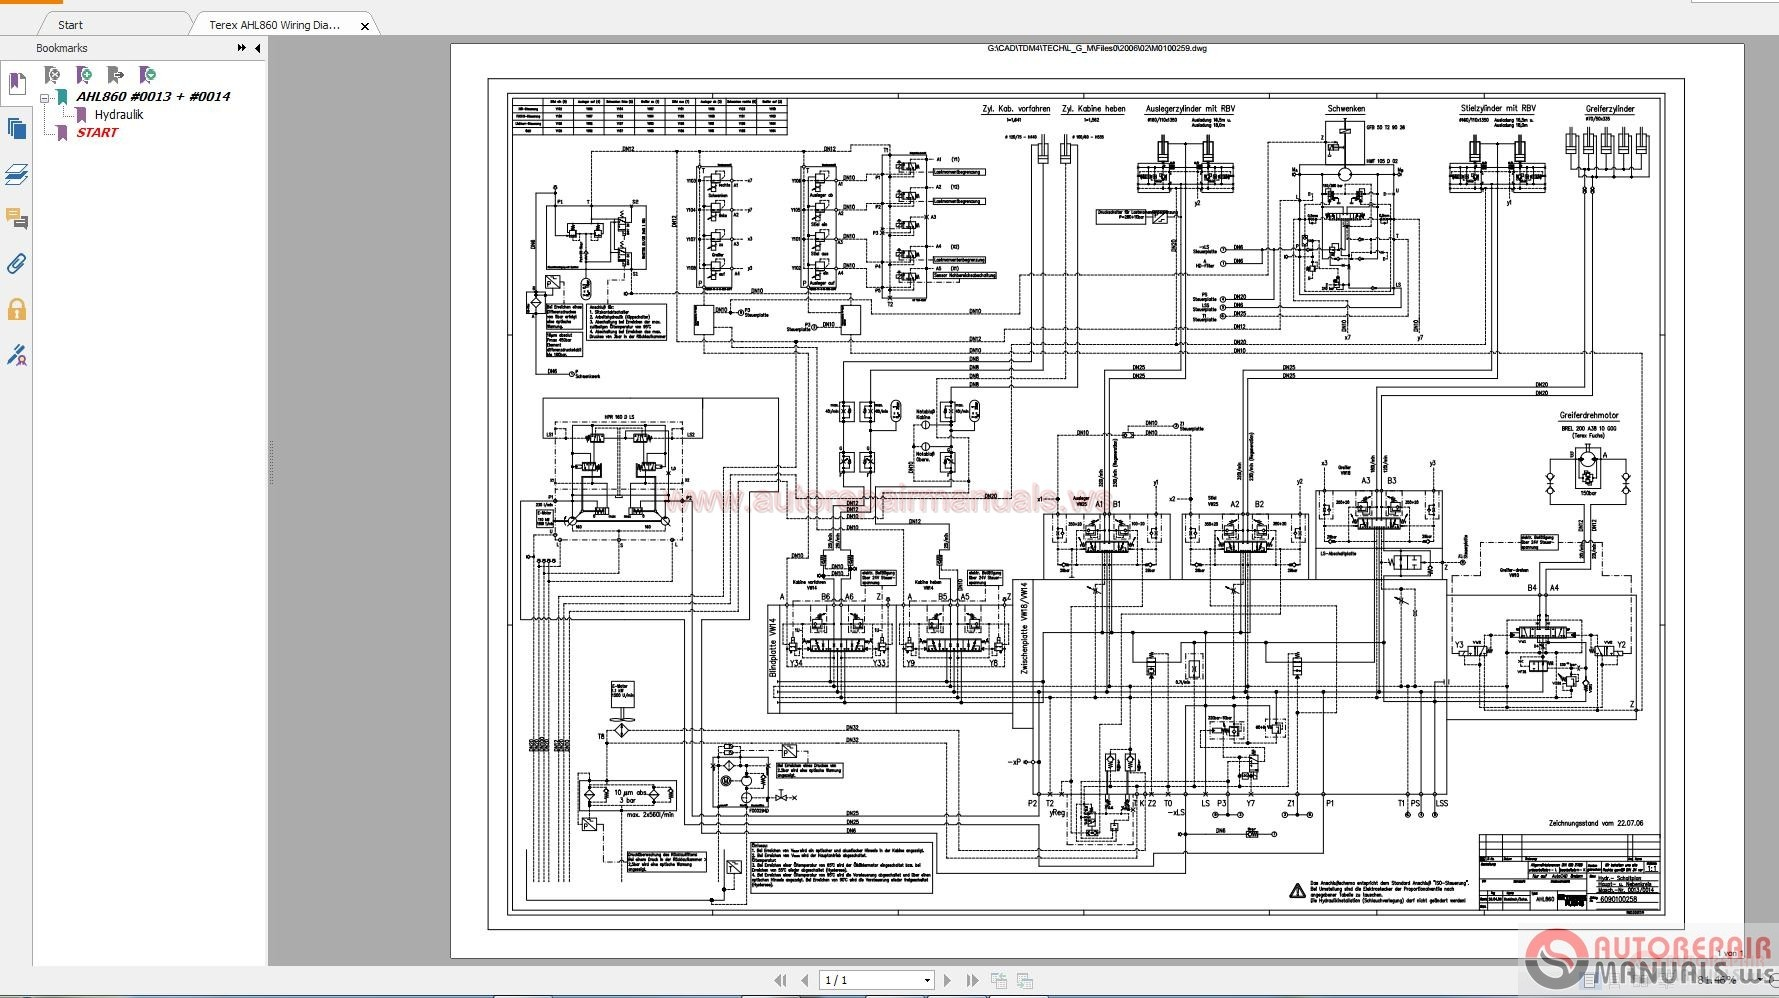 for alarm systems wiring diagrams 2015 210 popular electrical systems wiring diagrams terex ahl860 wiring diagram | auto repair manual forum ...